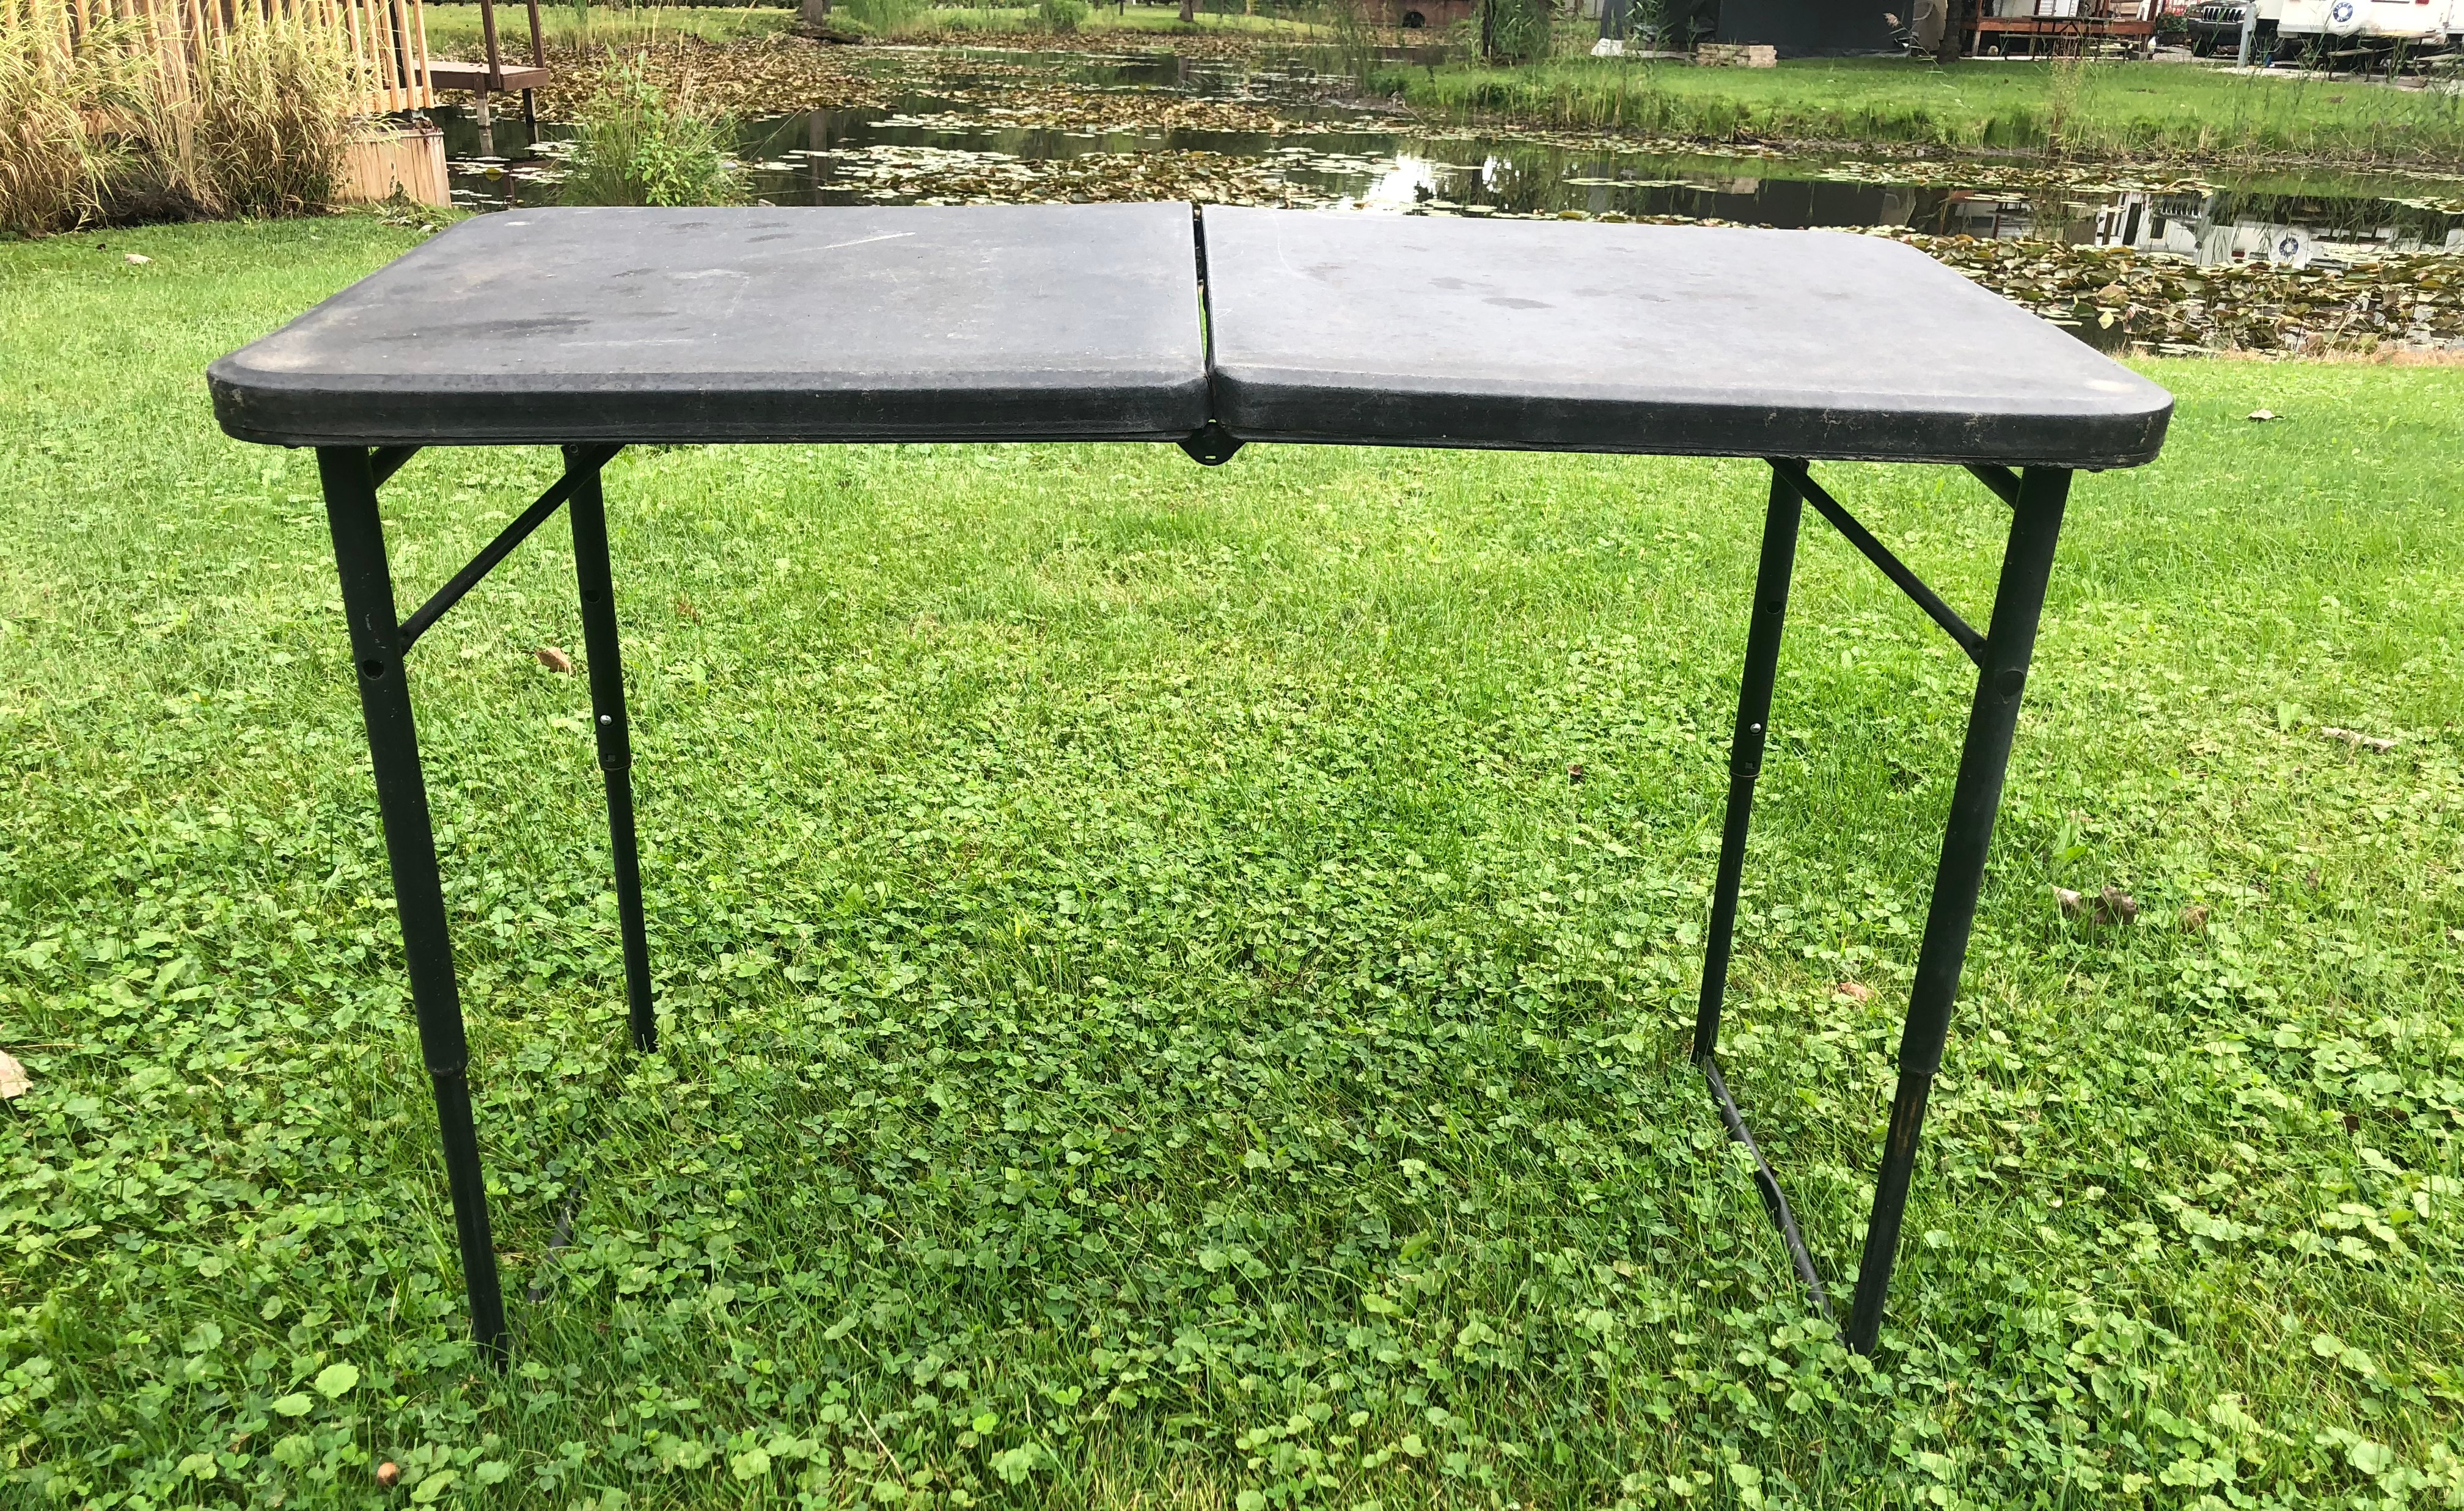 Use folding tables for cooking and eating outdoors at the campground